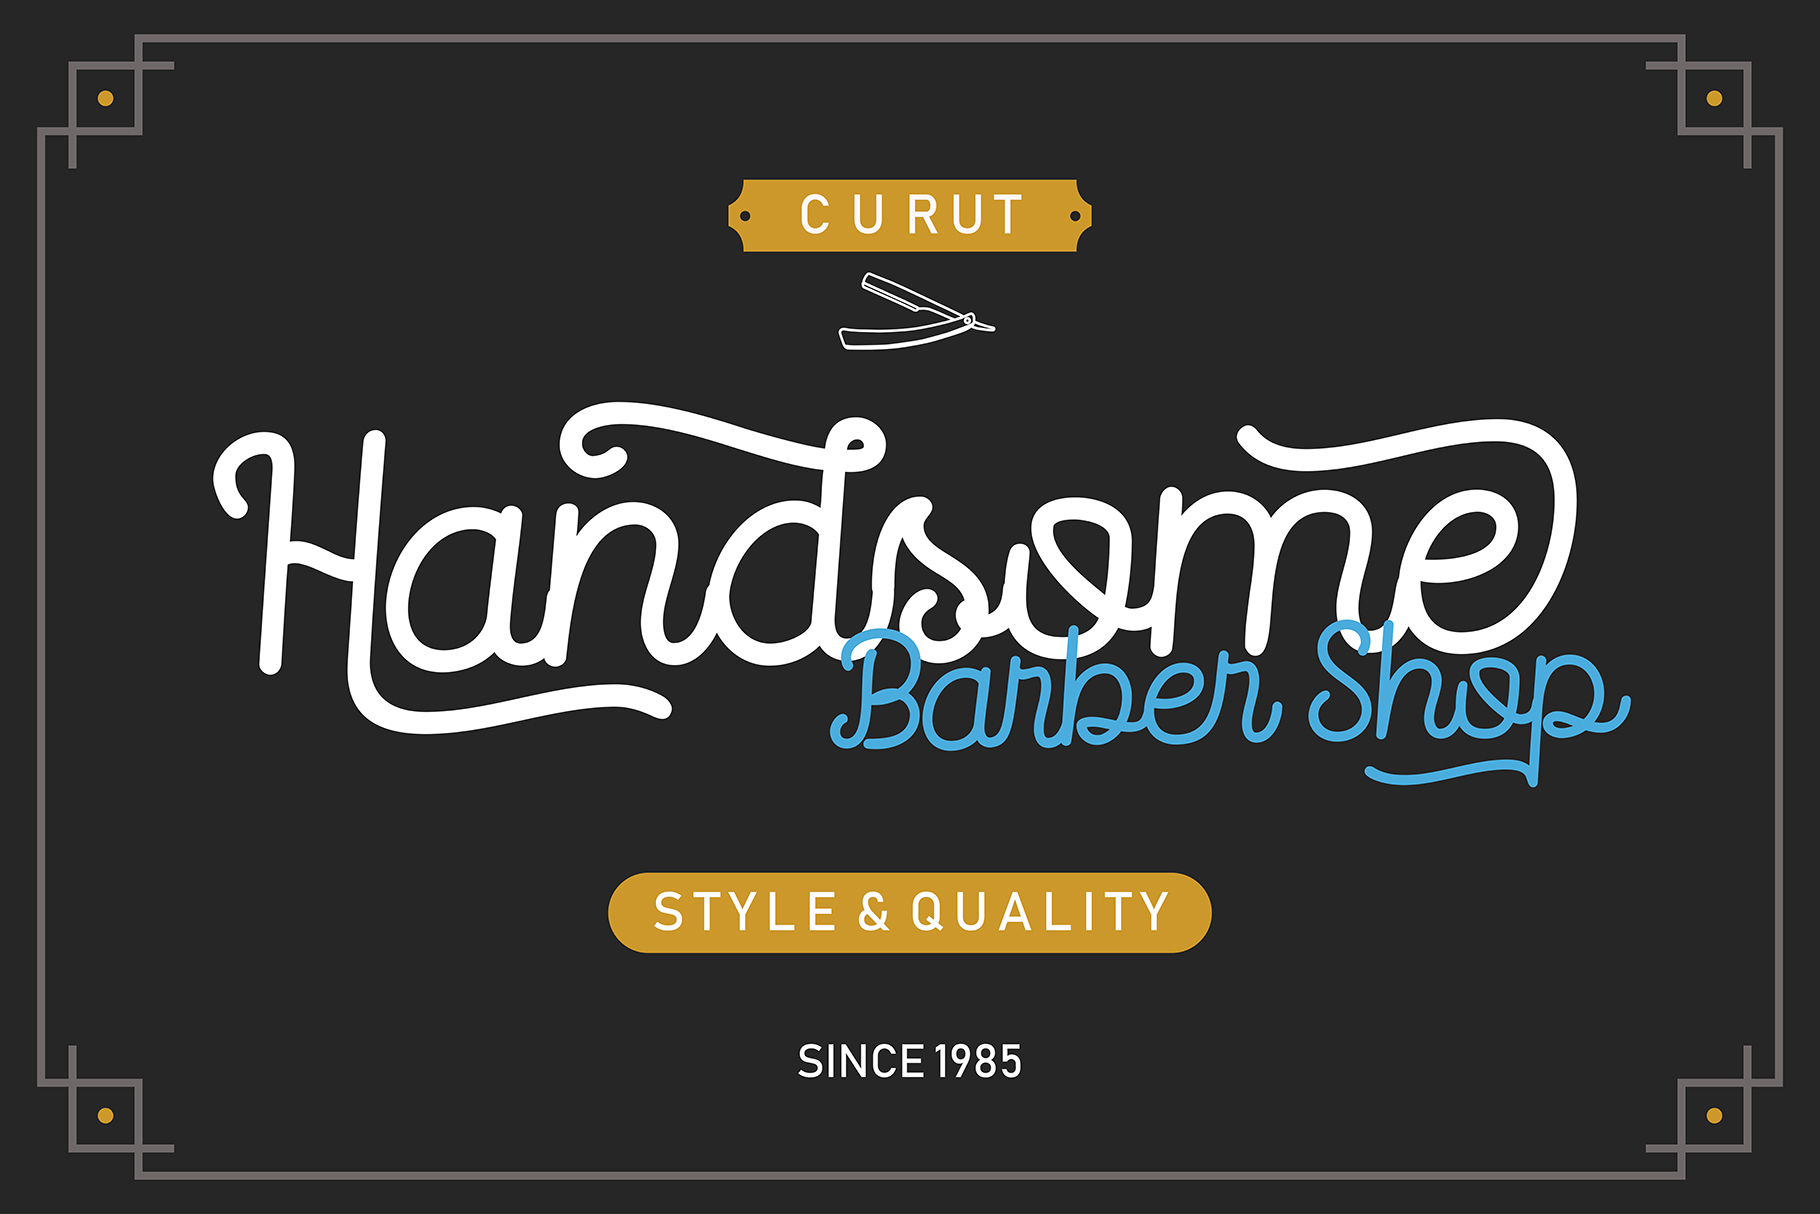 Routerline - 4 Style Font example image 2